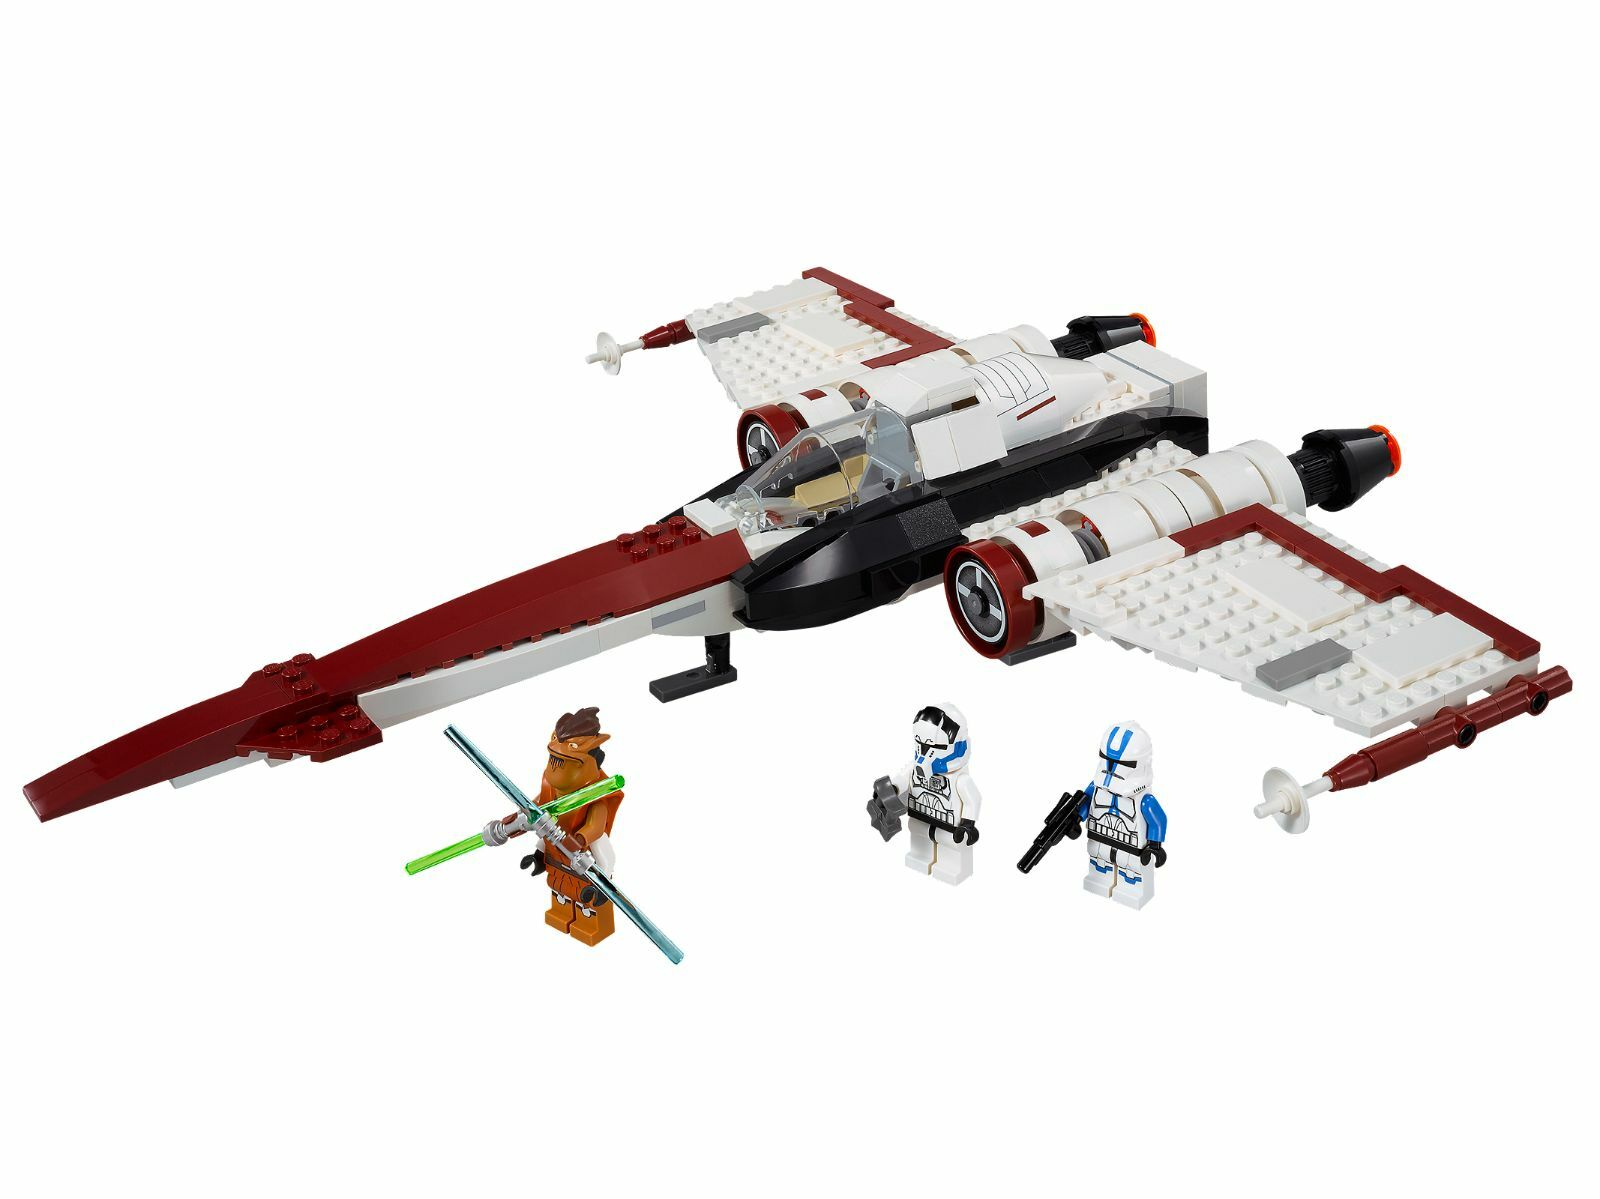 Lego 75004 Star Wars Z-95 Headhunter complet 100 % + notice + boite box de 2013